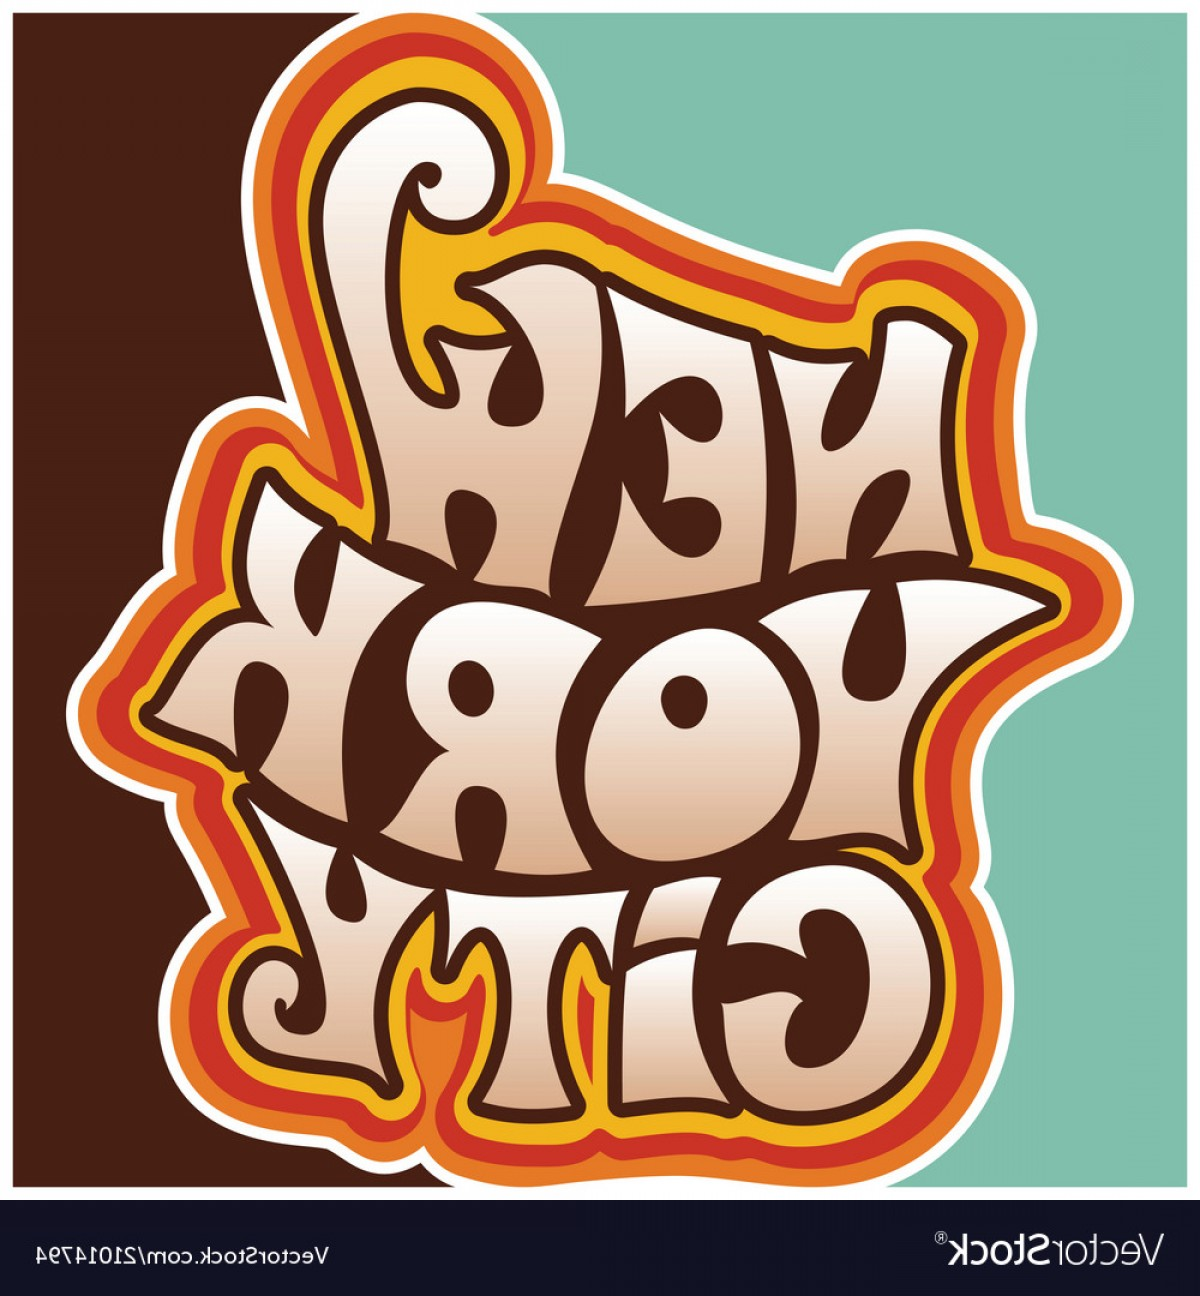 60s Vector: S S New York City Funky Lettering Vector